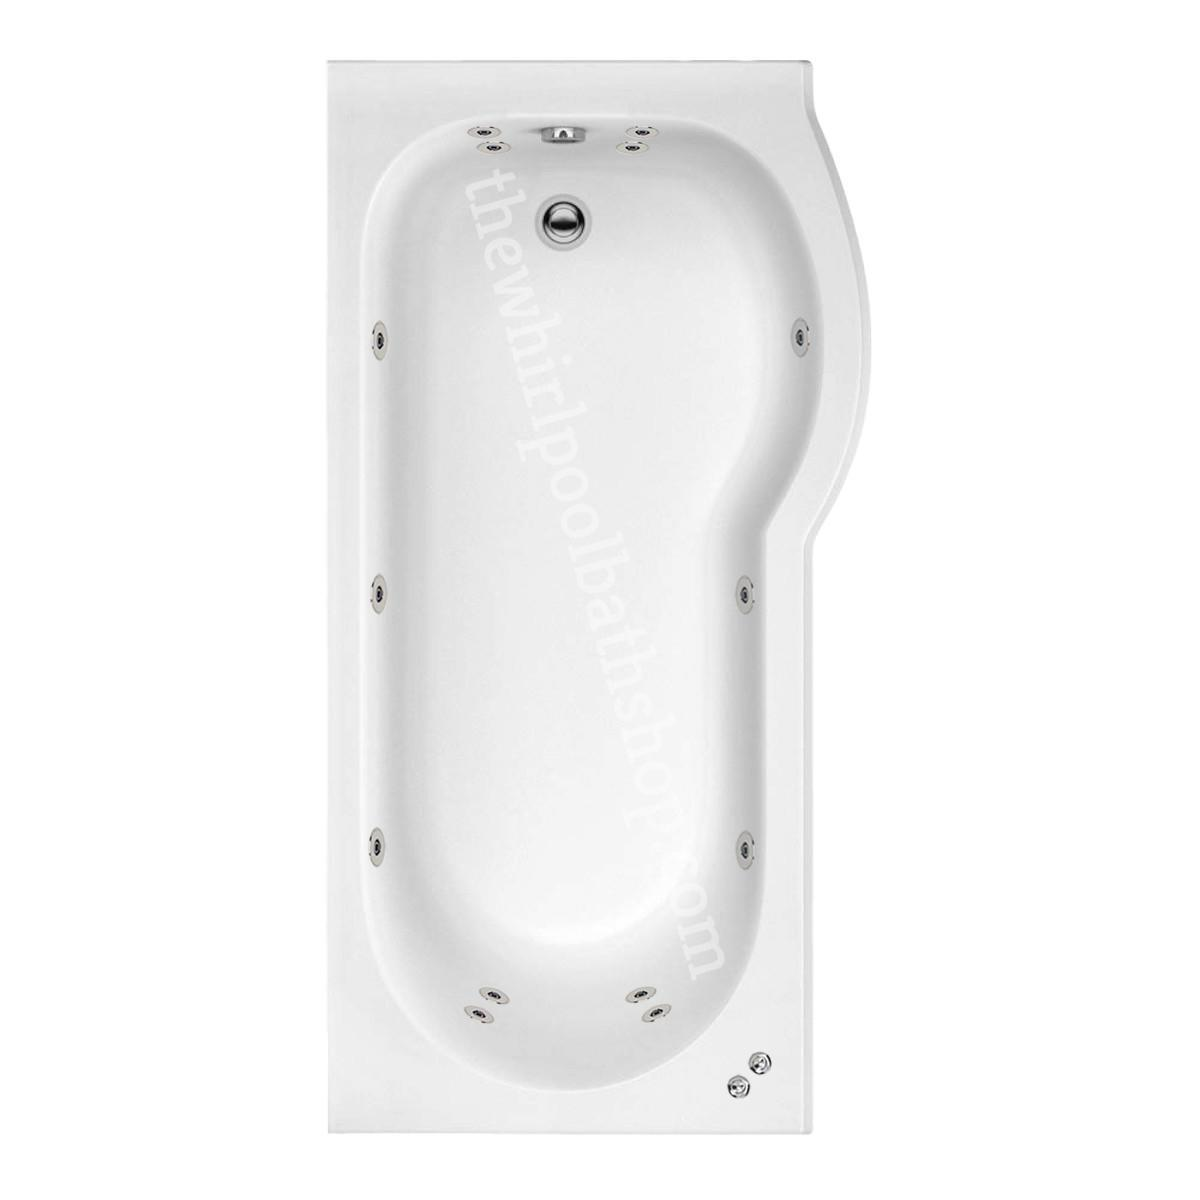 14 jet Trojan Concert 1500 mm Right Hand P Shaped Whirlpool Shower Bath